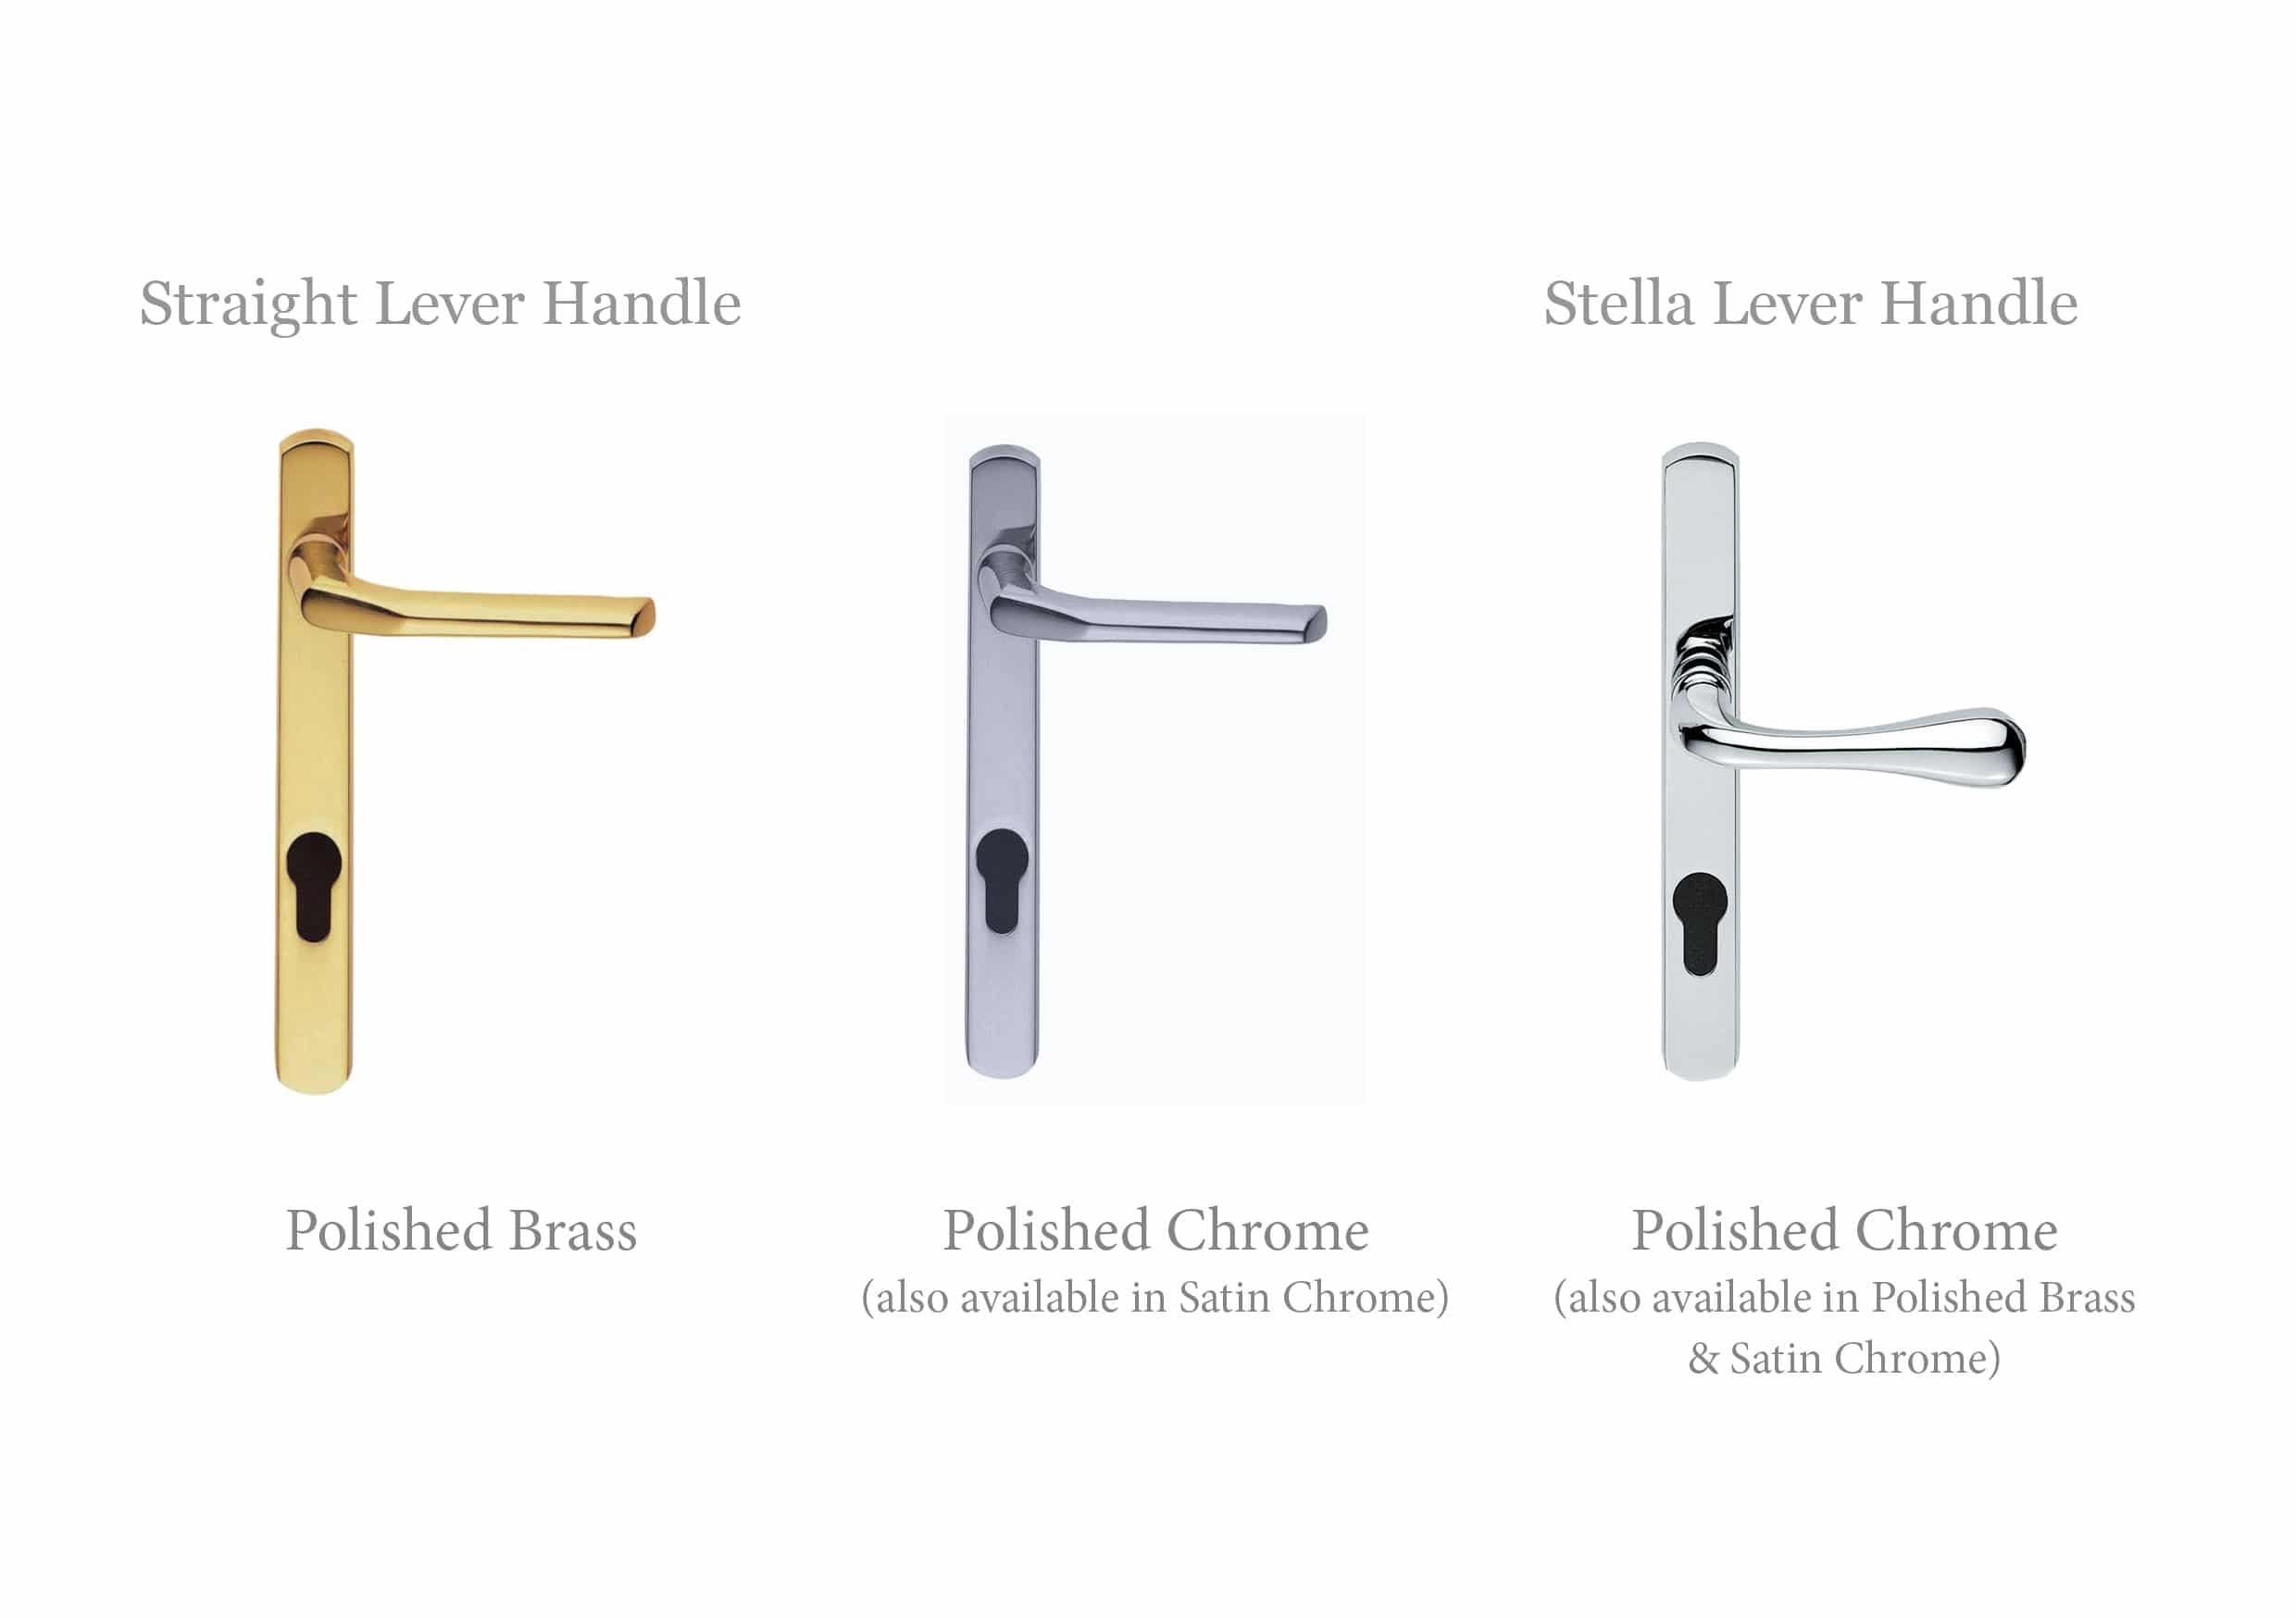 Straight Lever/ Stella Lever Handle